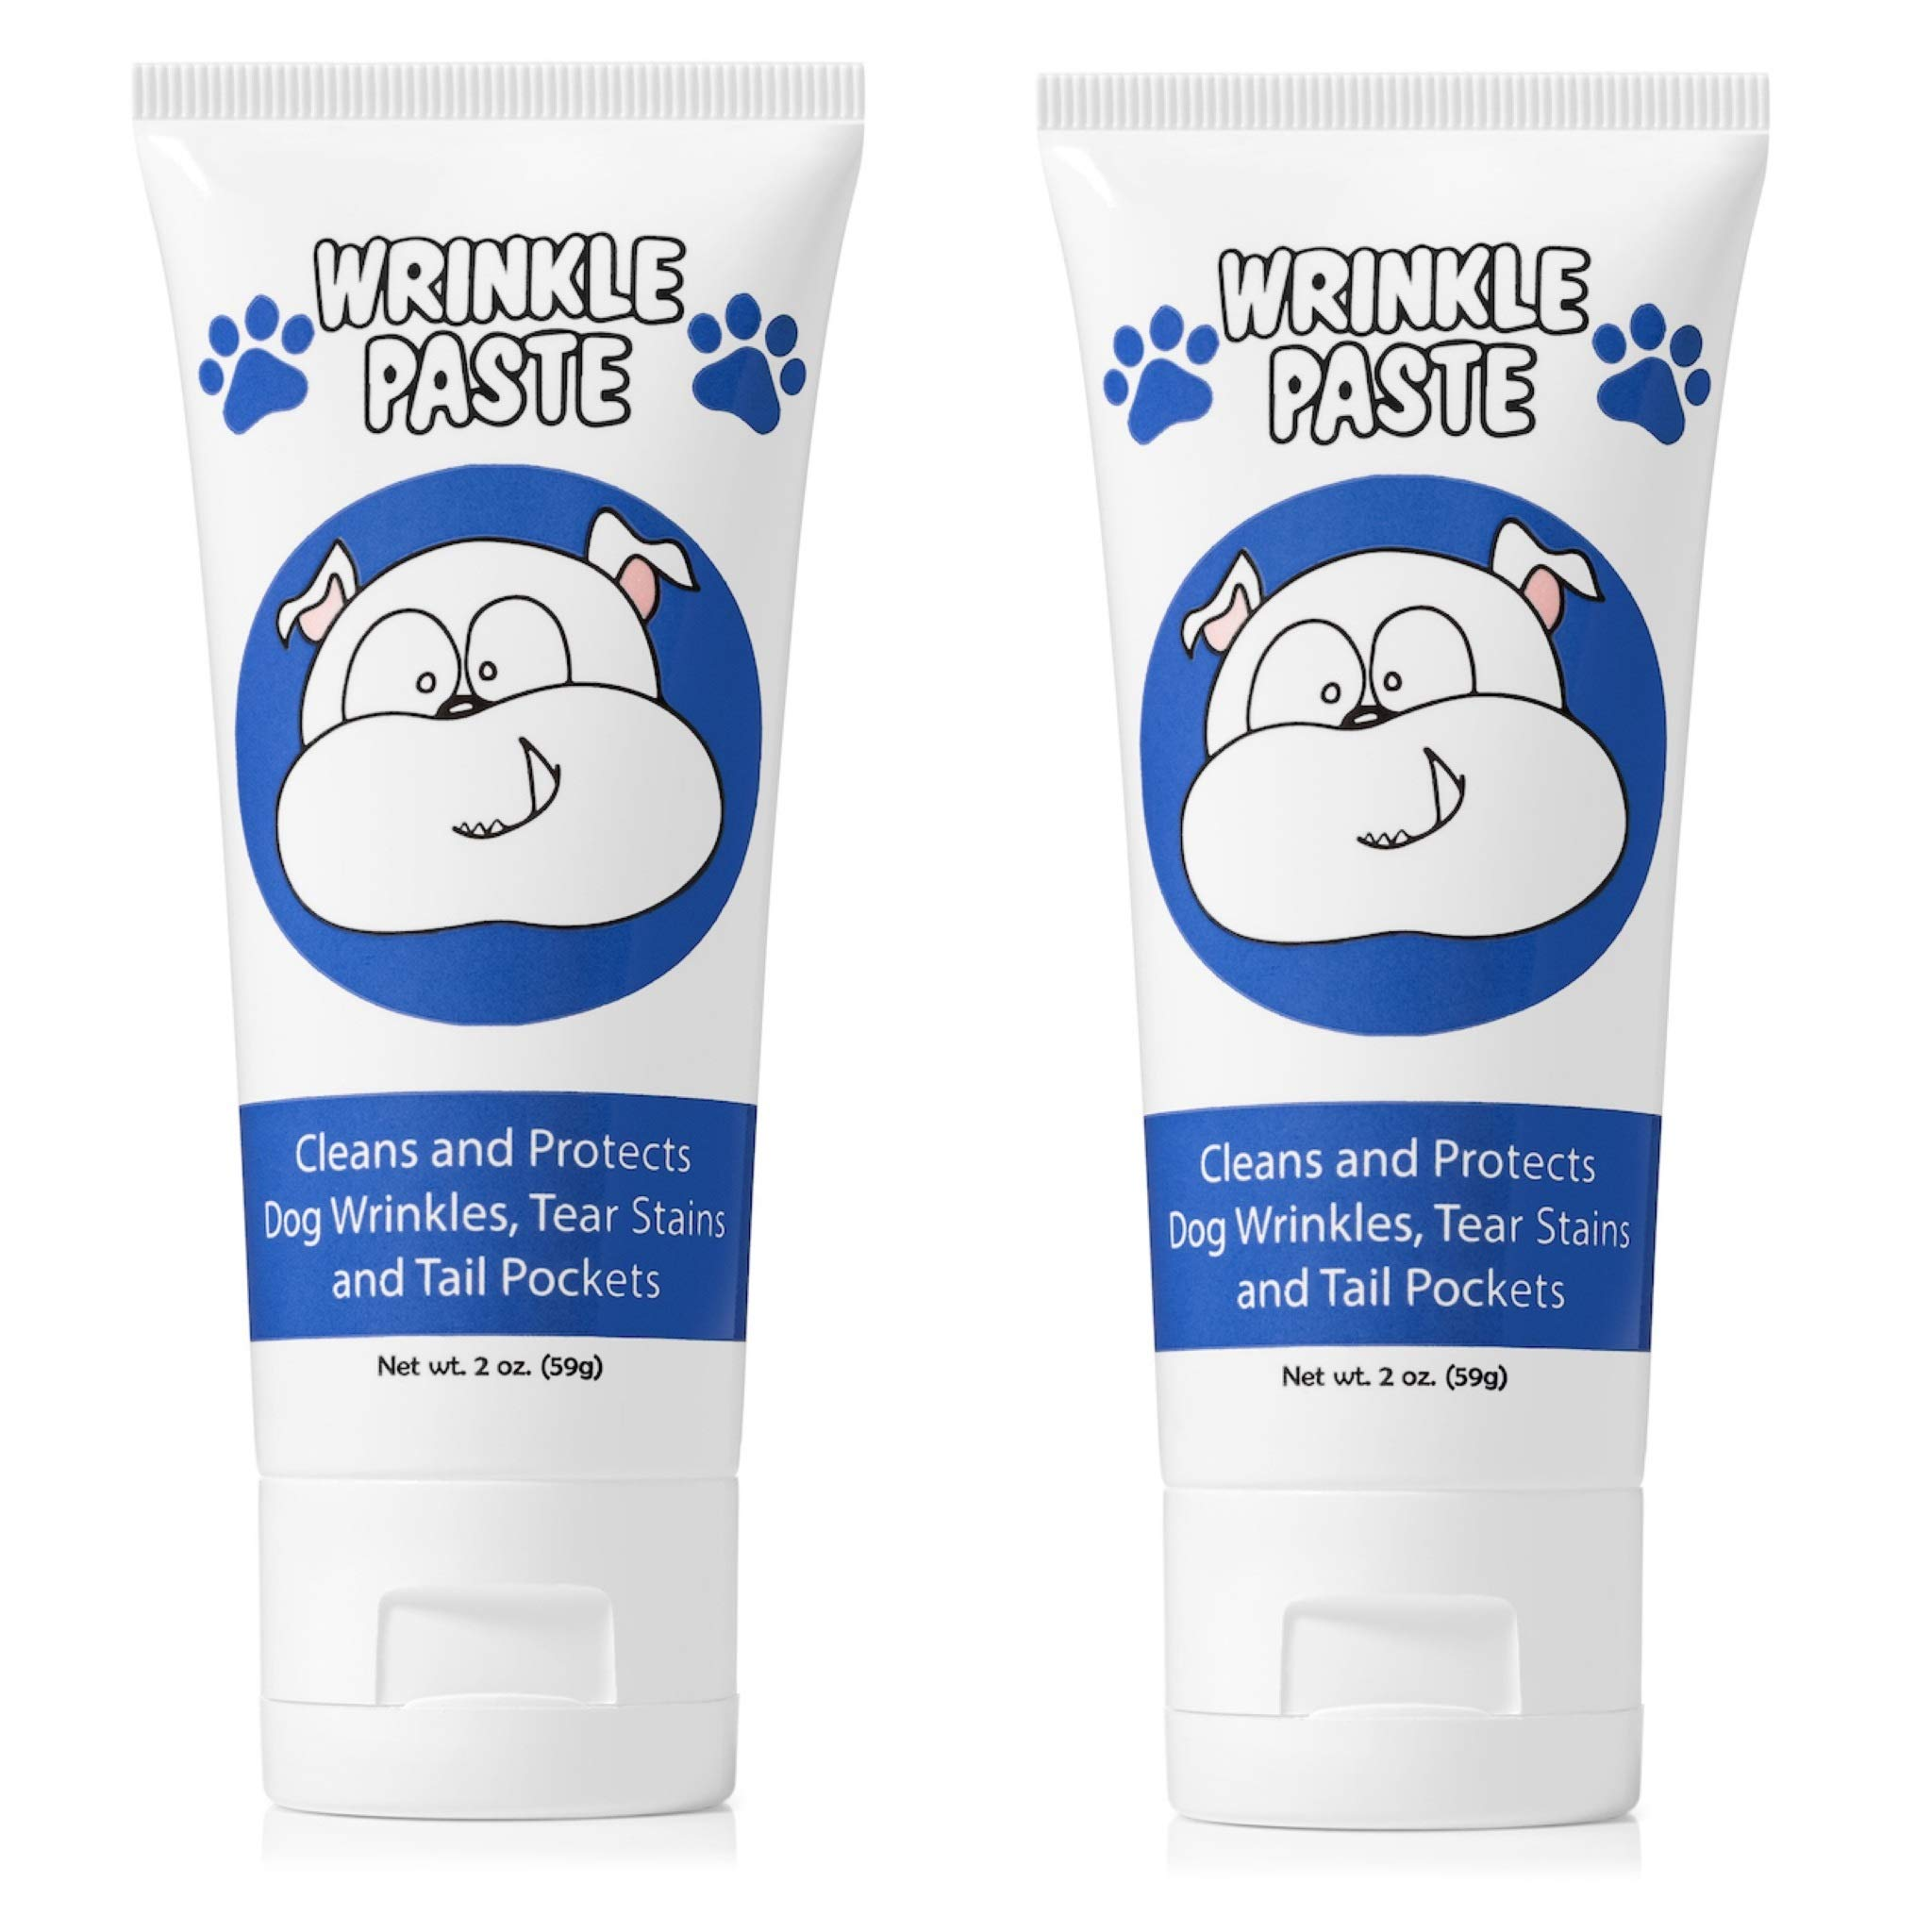 Squishface Wrinkle Paste - 2 Tubes - Cleans Wrinkles, Tear Stains and Tail Pockets - 2 Oz, Anti-Itch, Great for Bulldogs, Pugs and Frenchies by Squishface